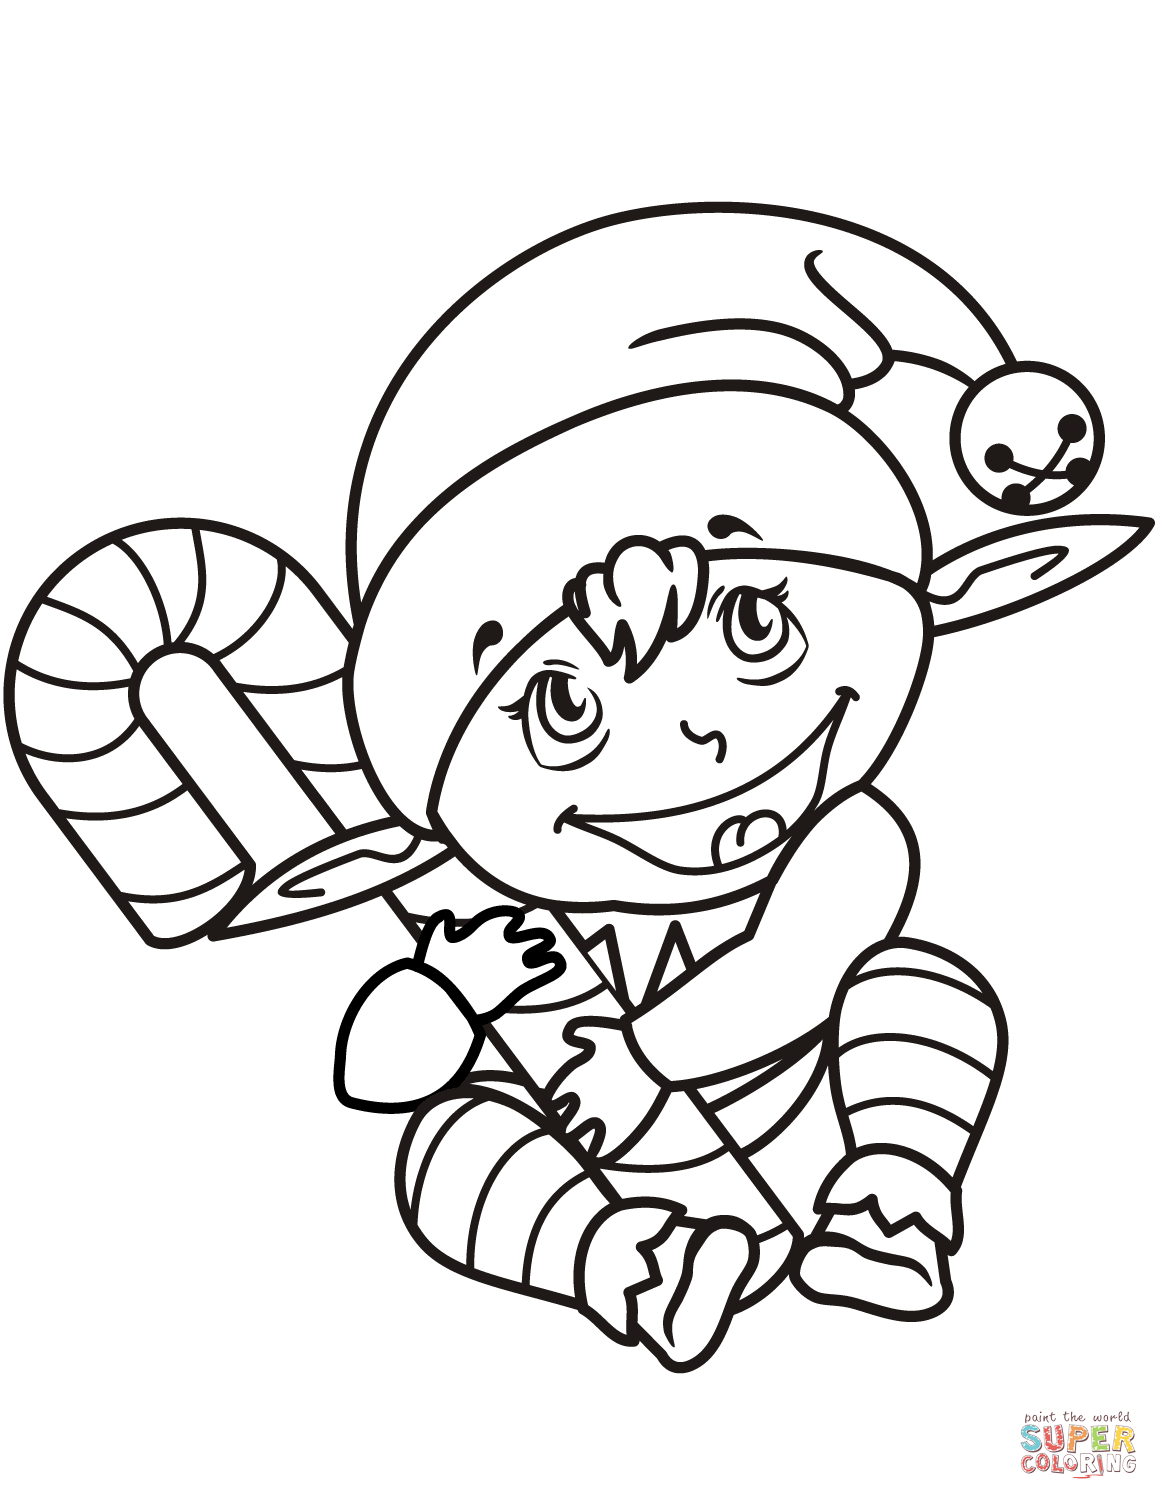 Elf Coloring Pages | Free download best Elf Coloring Pages on ...